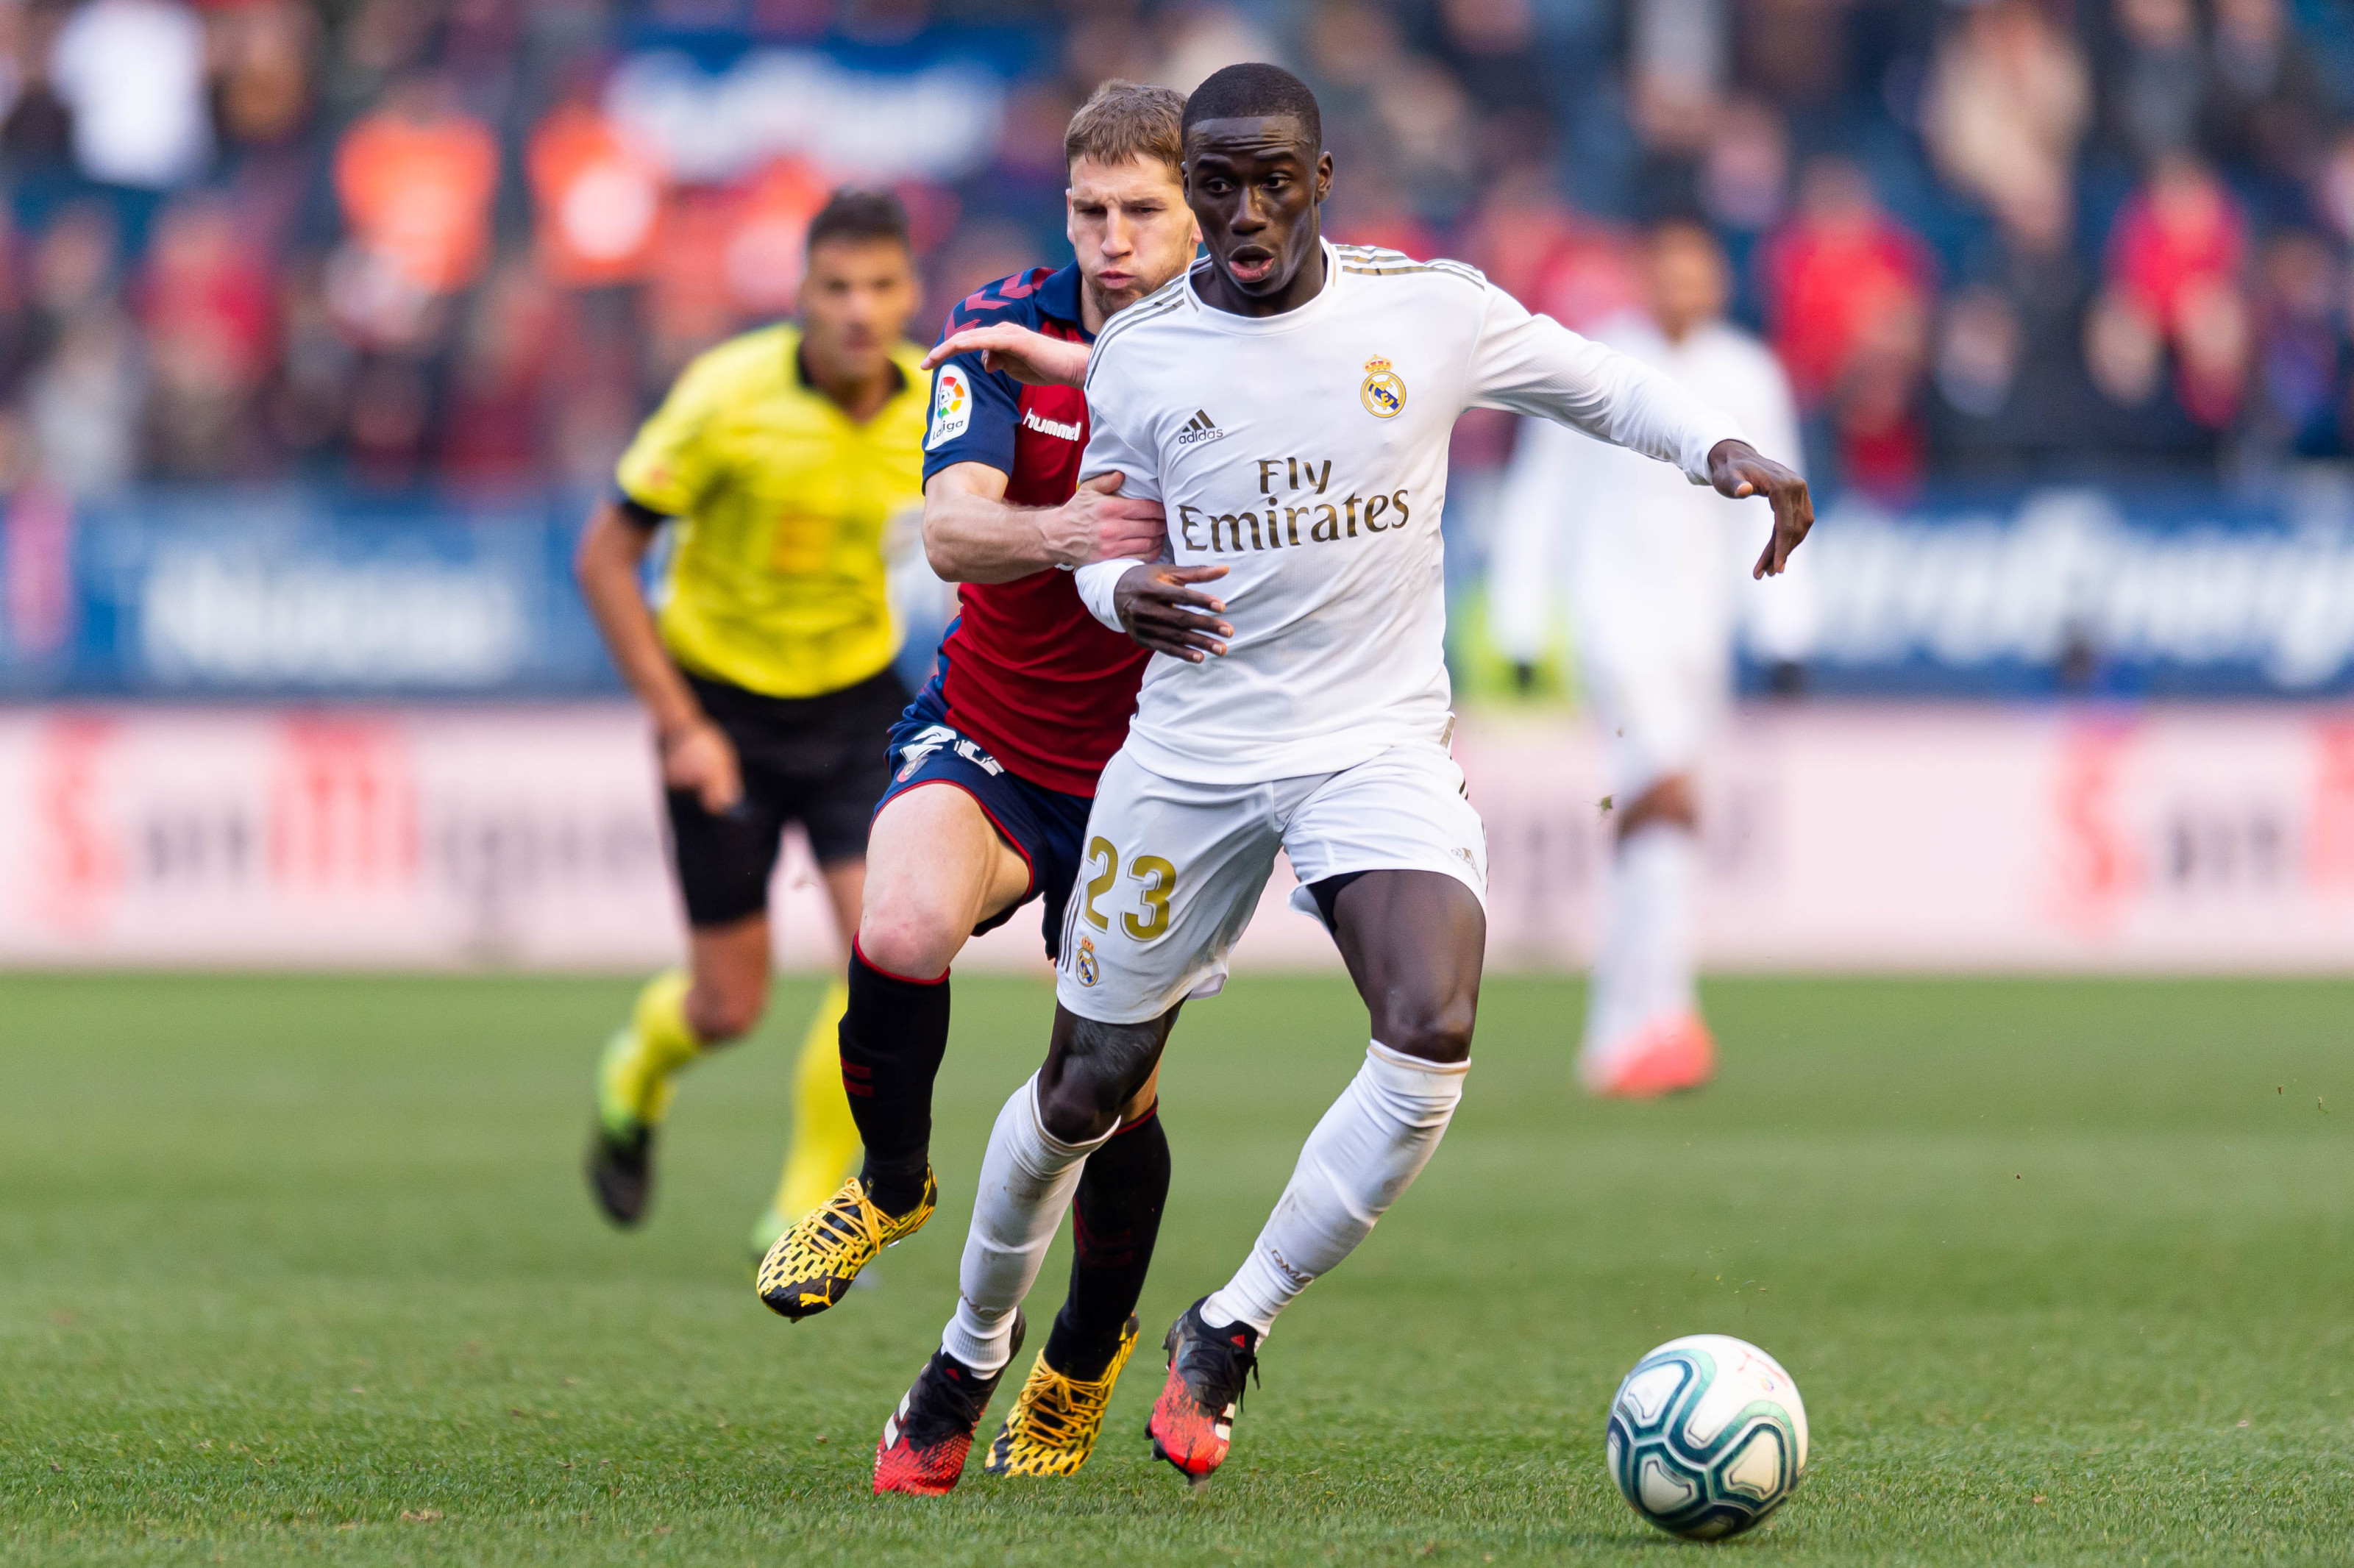 Real Madrid: Ferland Mendy is already one of the world's best